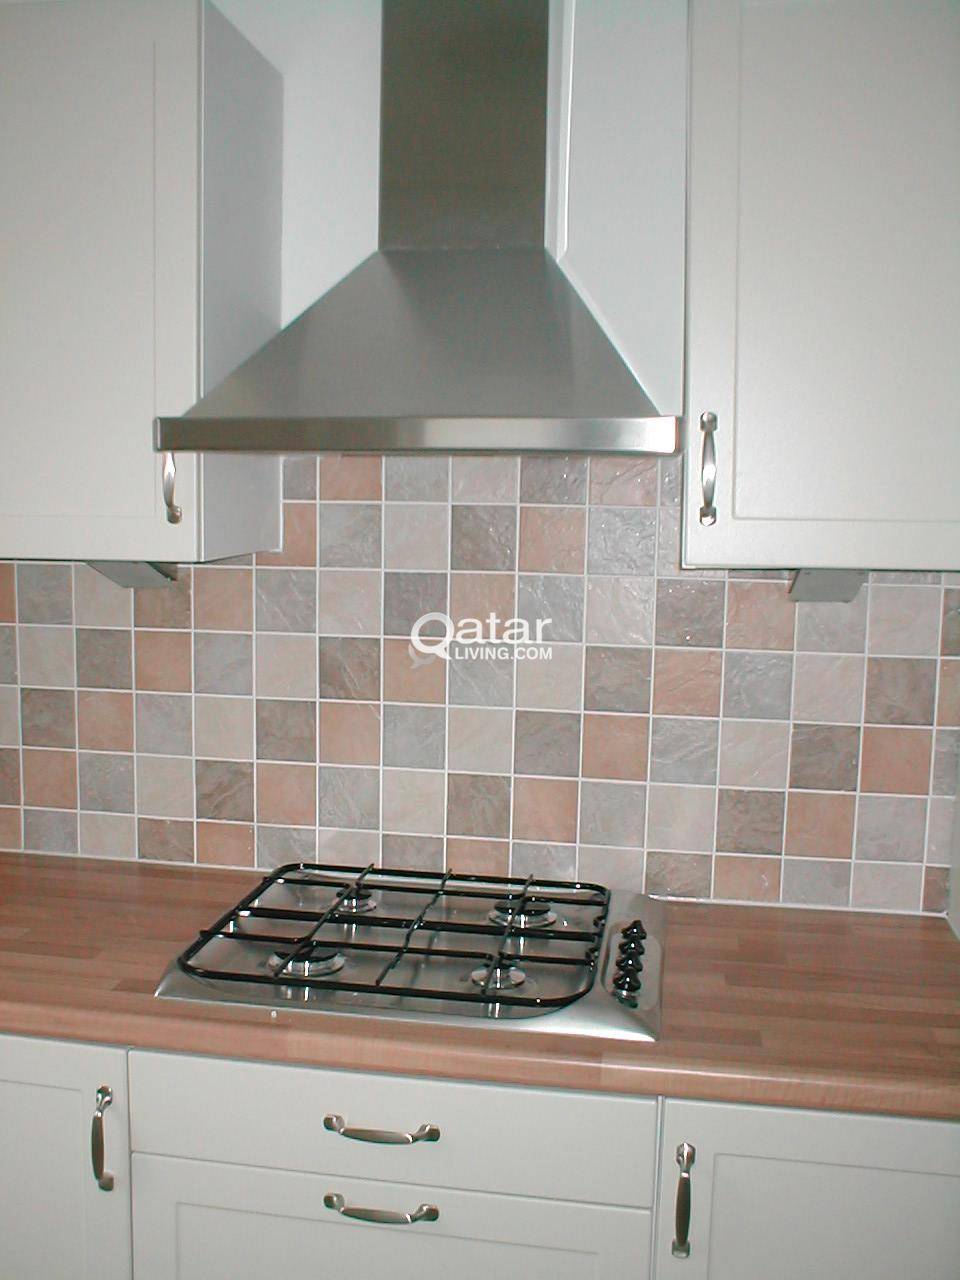 In Need Of A Kitchen Chimney Qatar Living